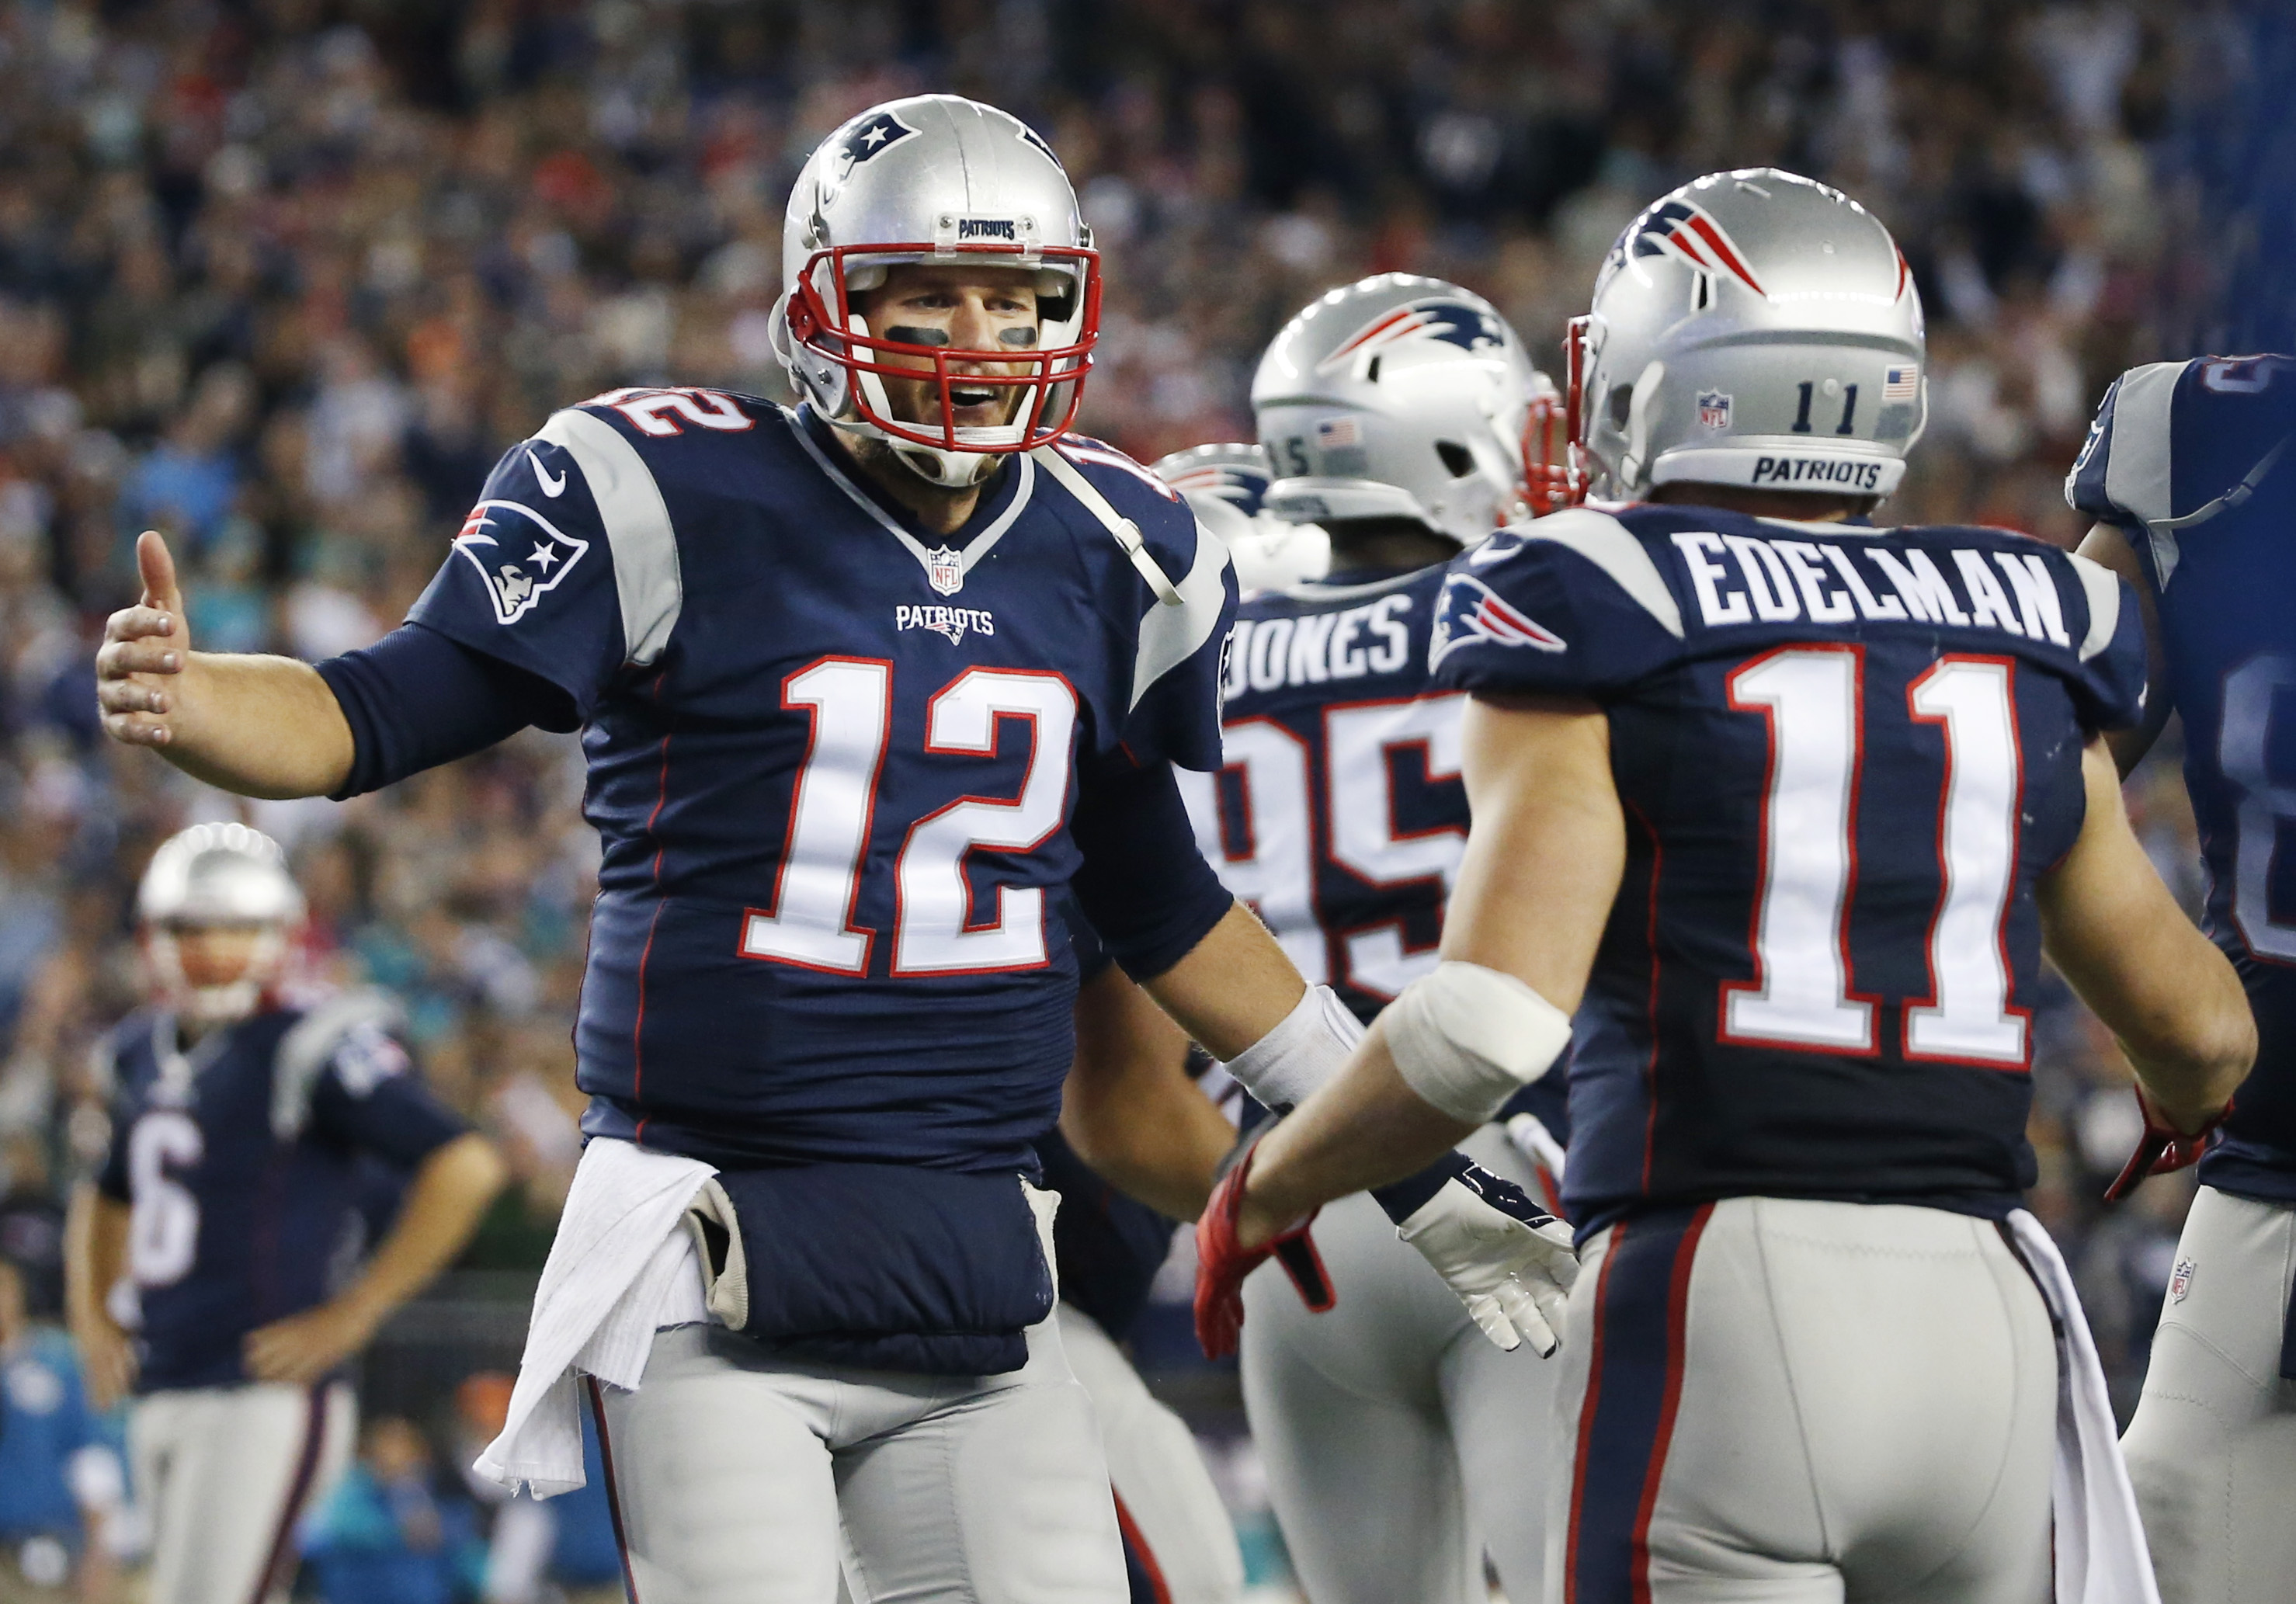 New England Patriots quarterback Tom Brady (12) celebrates his touchdown pass to wide receiver Julian Edelman (11) in the second half of an NFL football game against the Miami Dolphins, Thursday, Oct. 29, 2015, in Foxborough, Mass. (AP Photo/Michael Dwyer